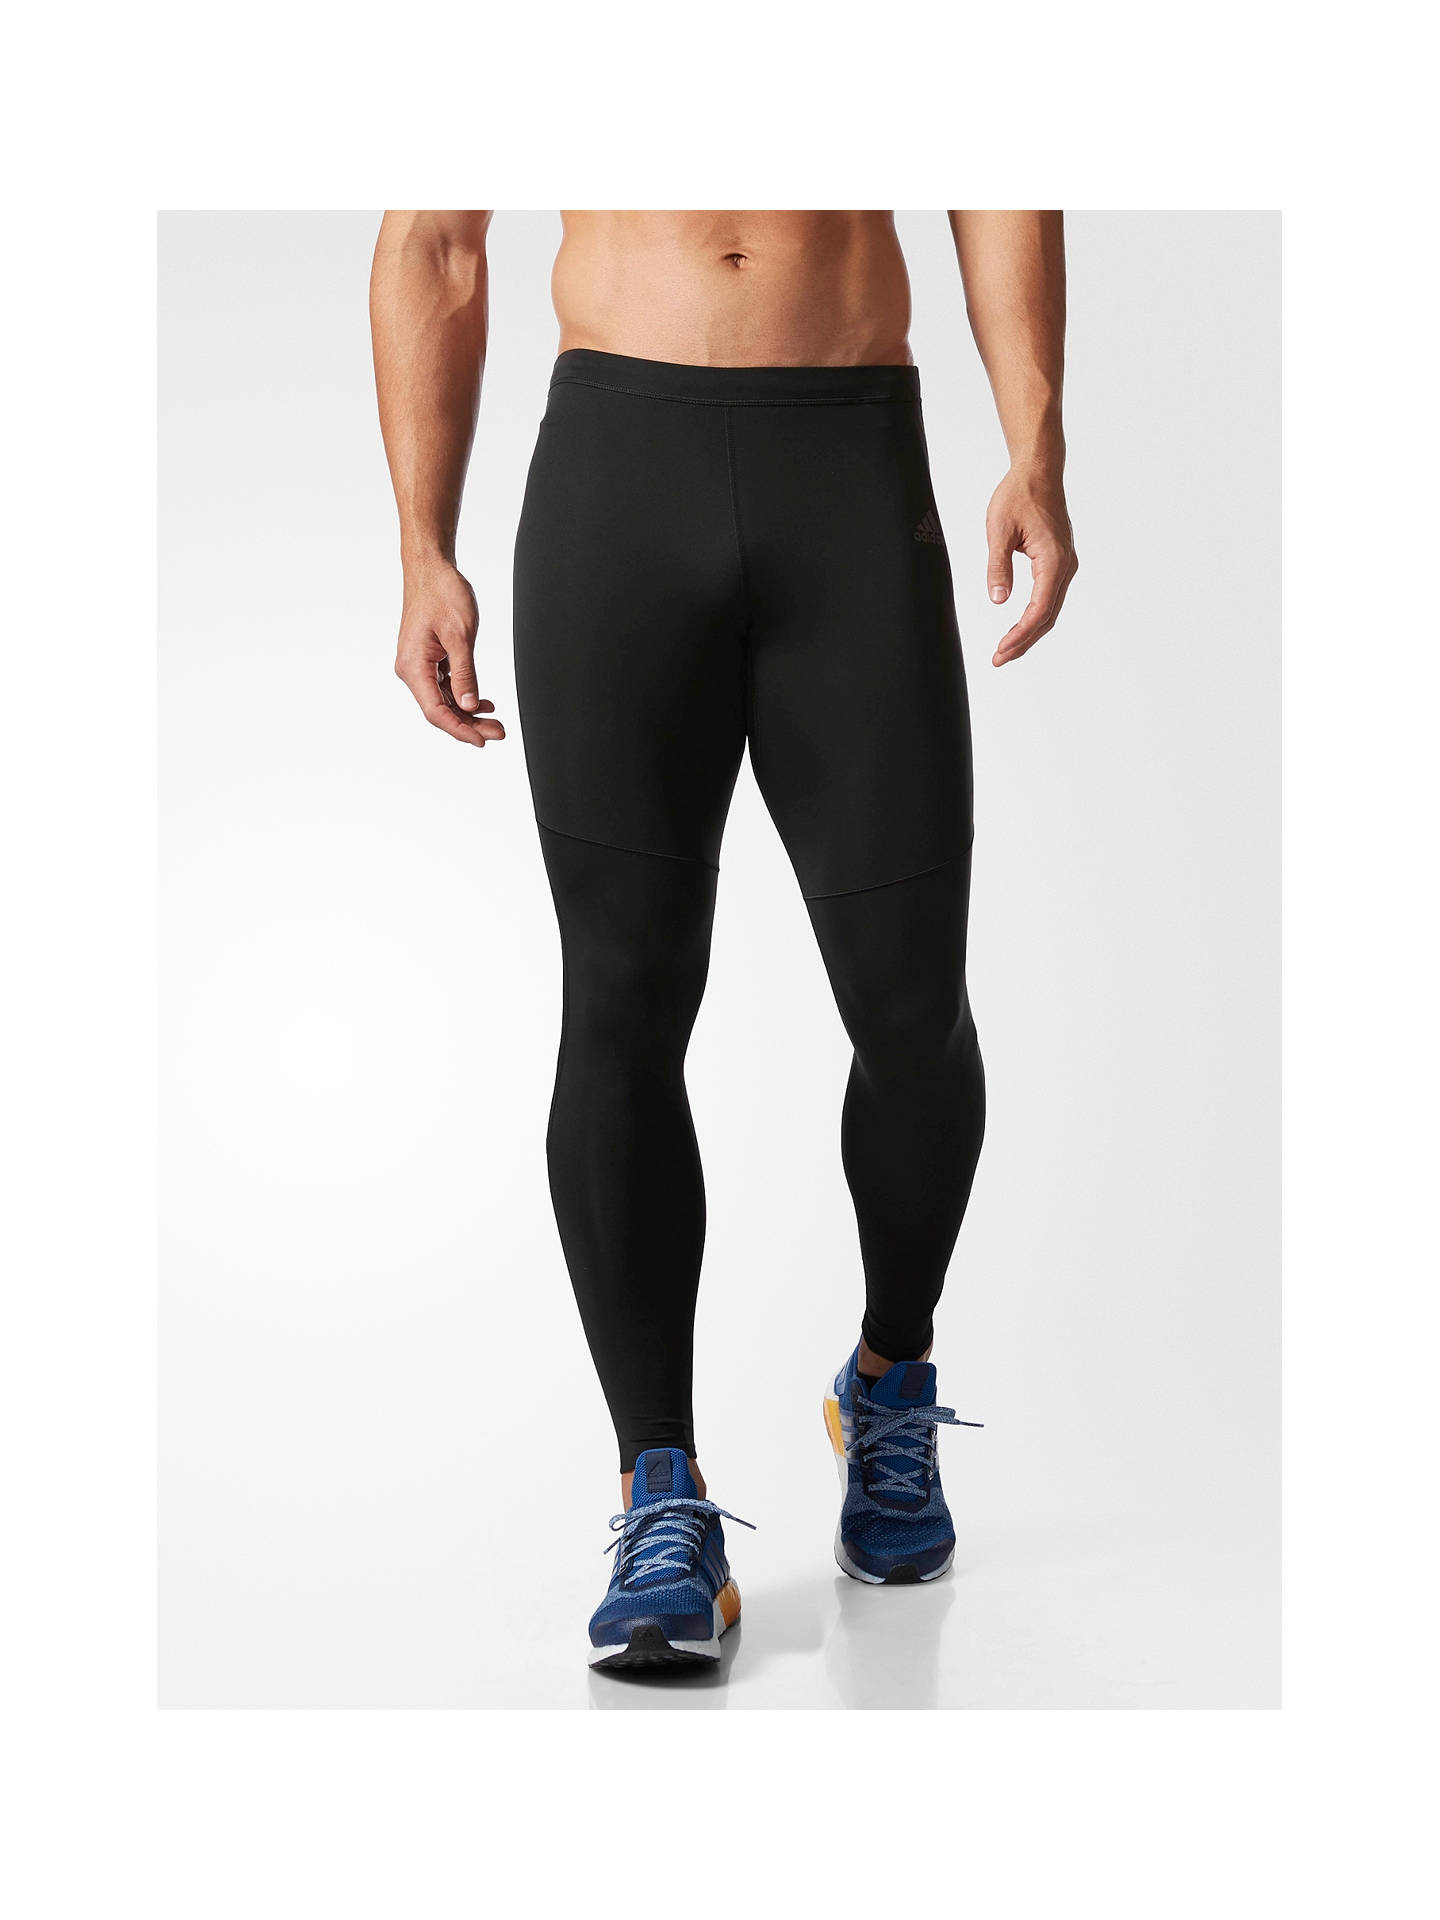 1f8ba749 adidas Response Men's Long Running Tights, Black at John Lewis ...